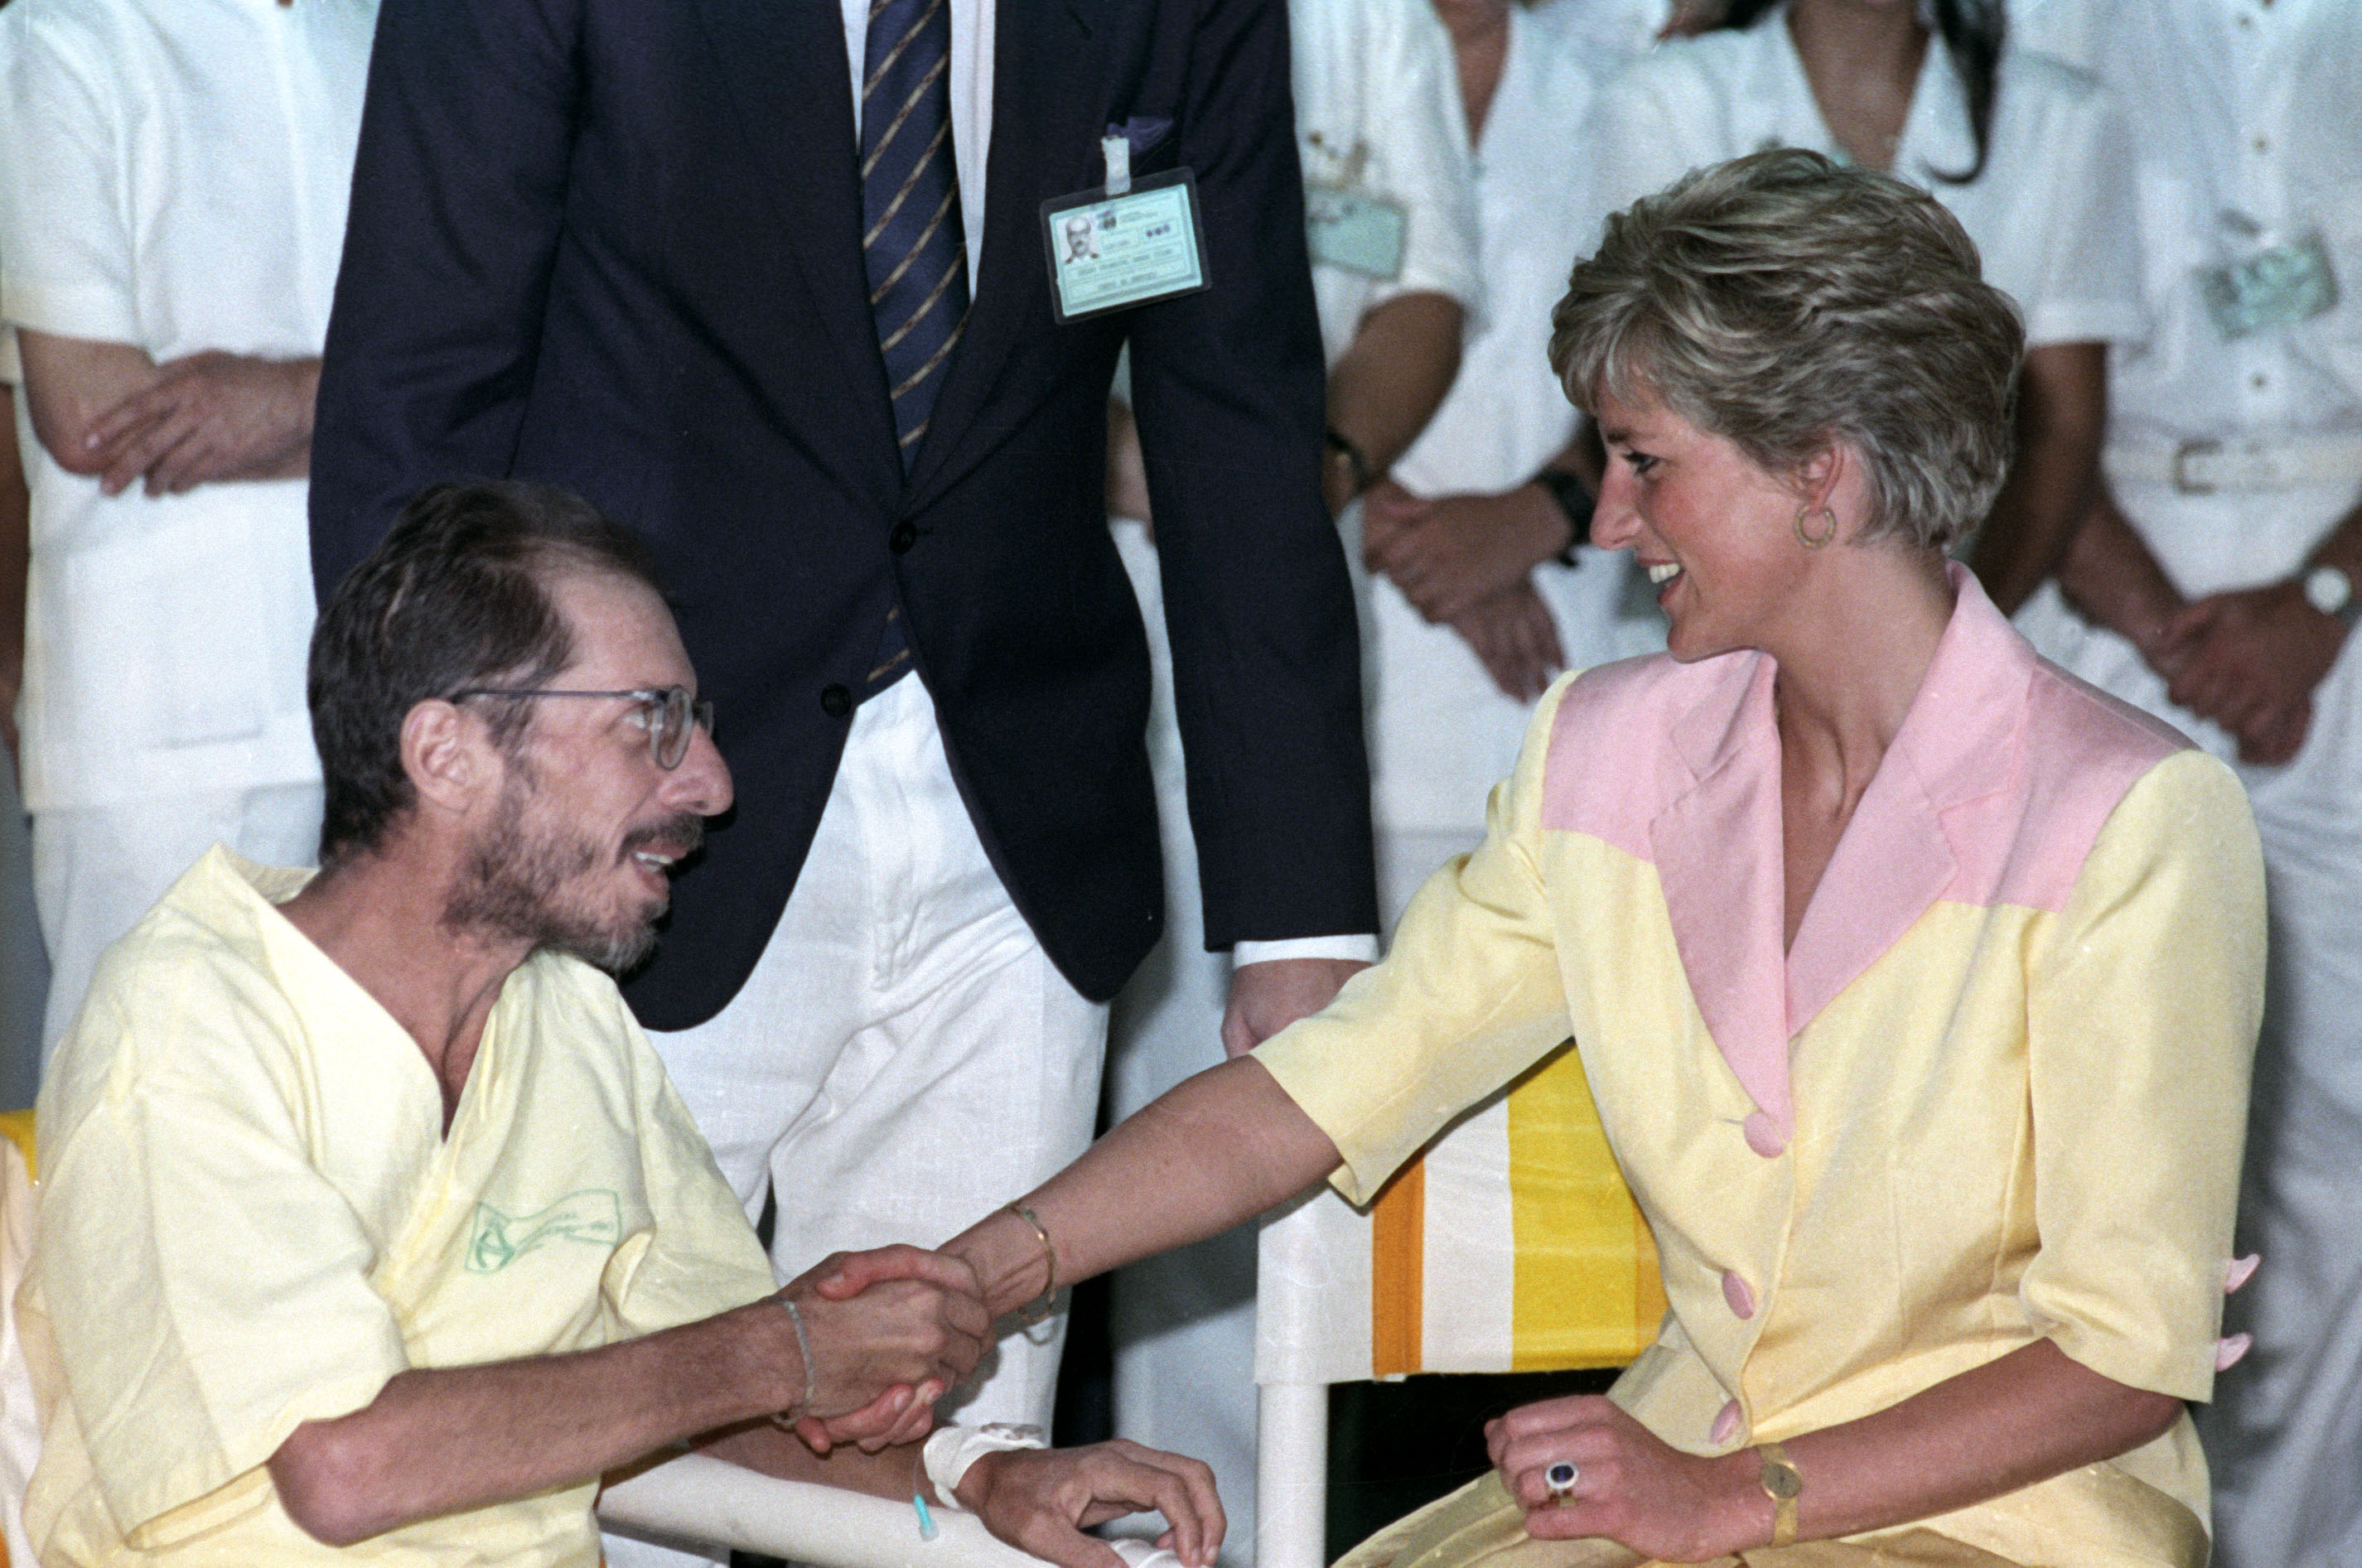 Princess Diana meets an AIDS patient at the Federal University of Rio de Janeiro hospital in Brazil on April 25, 1991. Photo by Vanderlei Almeida/Reuters